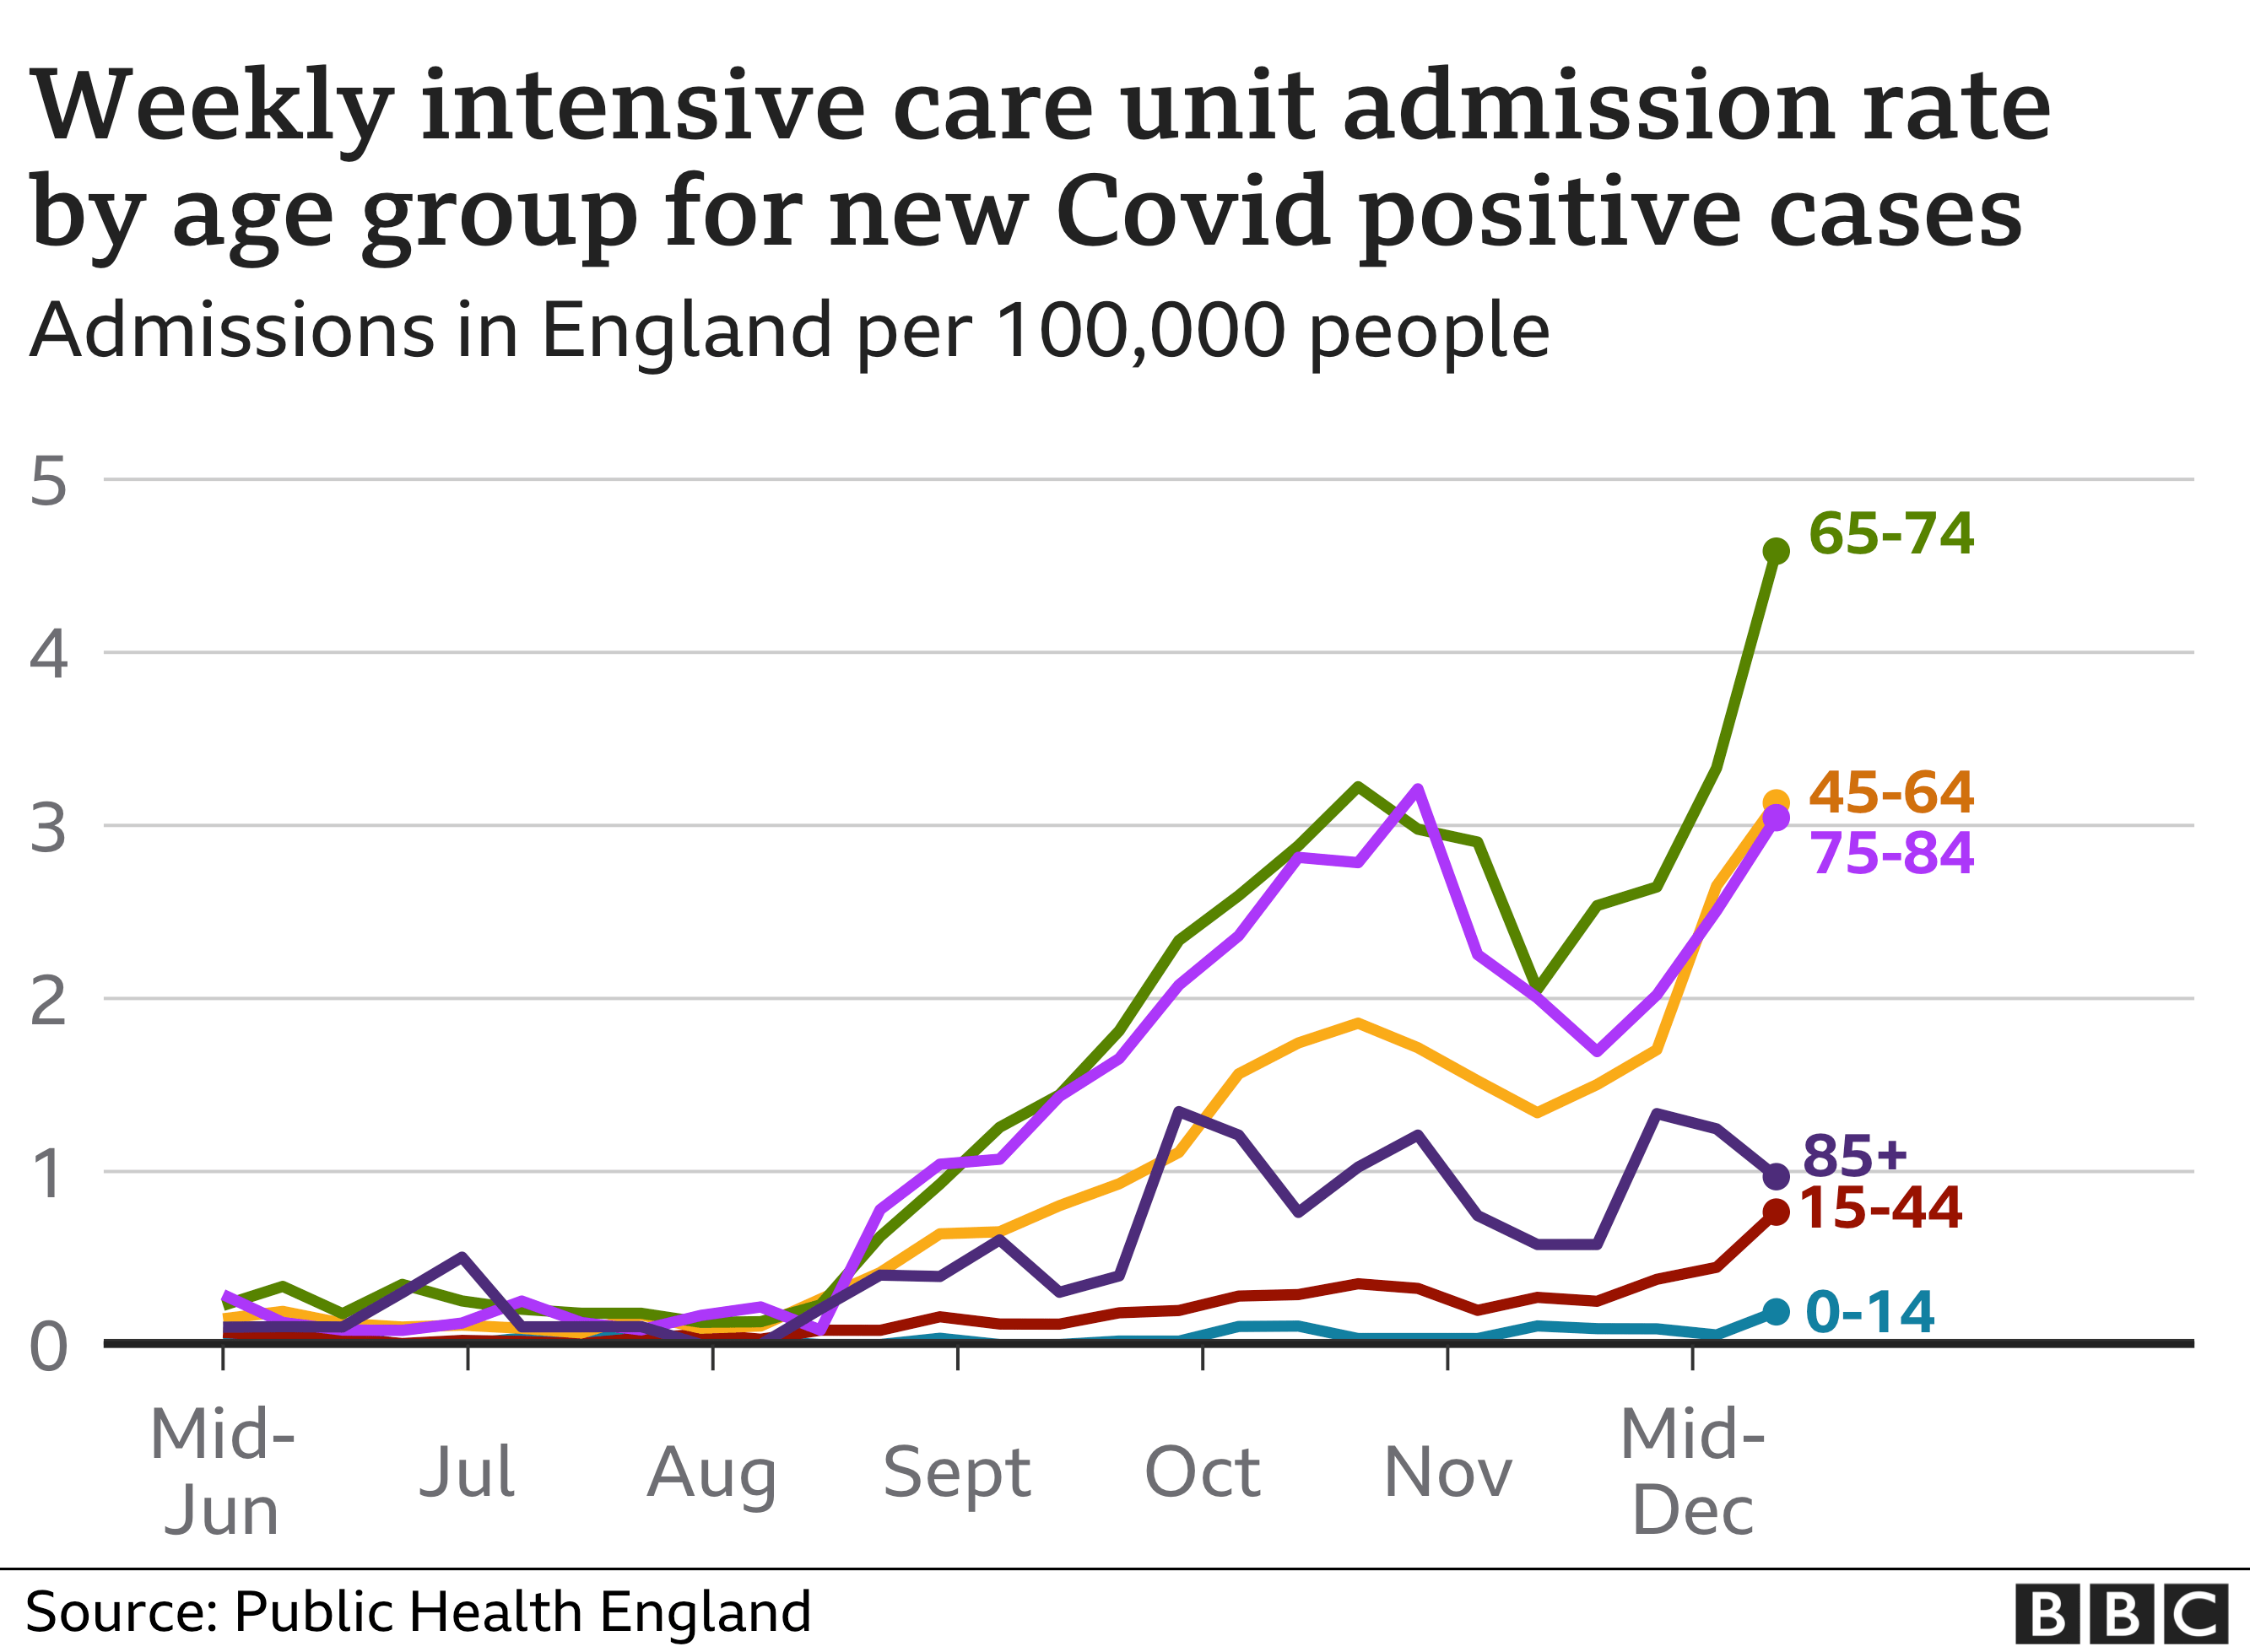 Covid intensive care admission rates by age groups